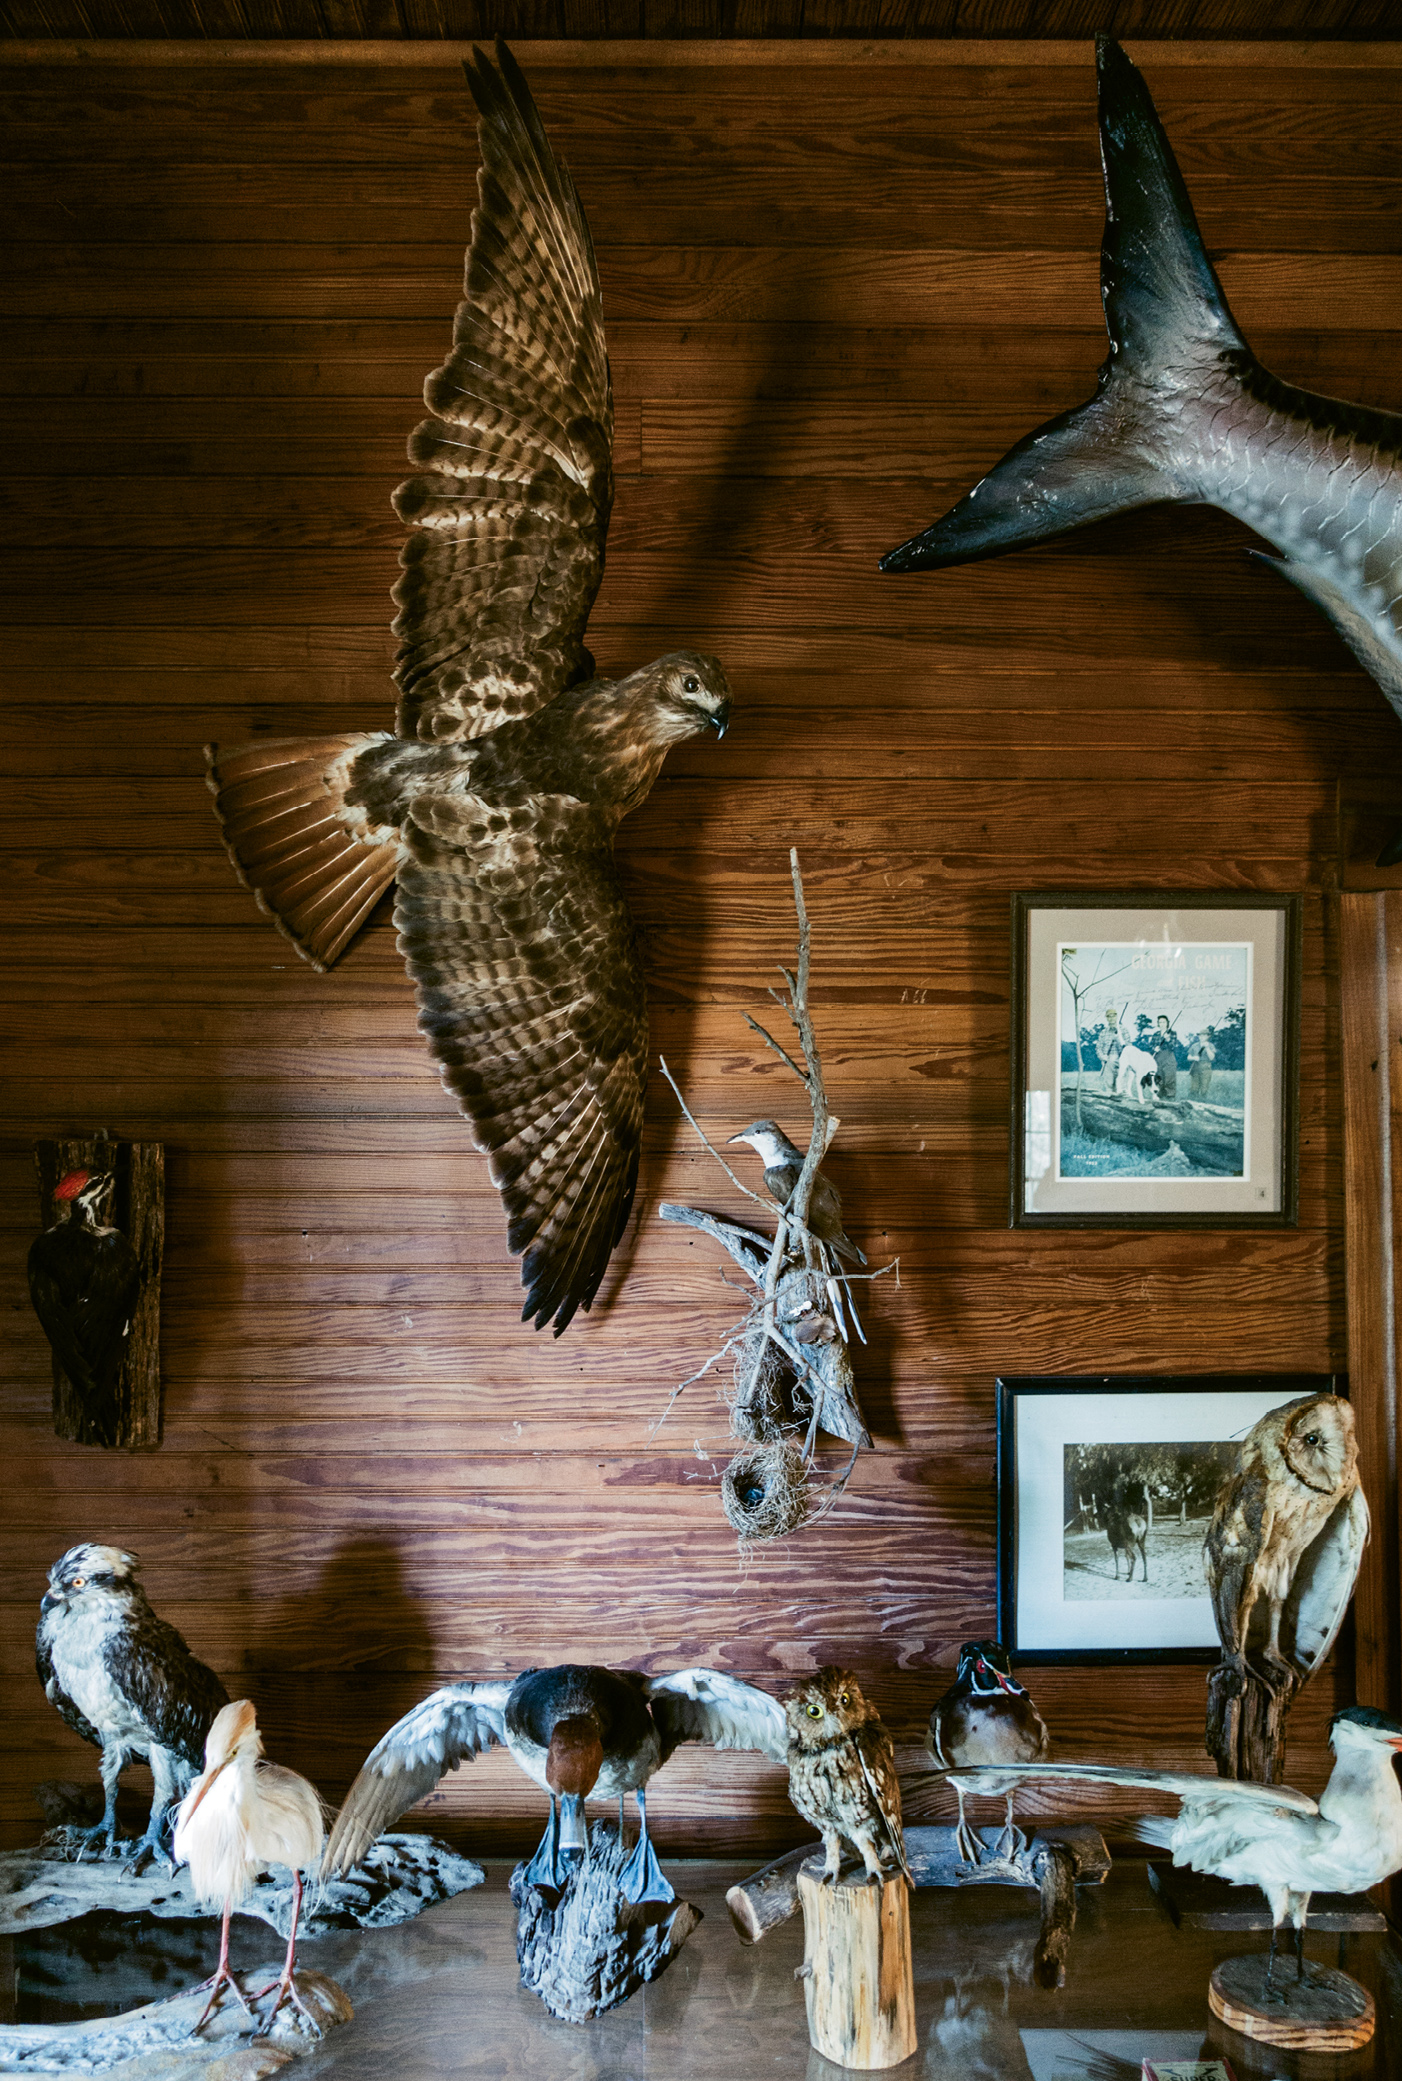 Wild in & out: The lodge walls are lined with mementos from the island's history and past guests, along with stuffed birds and other natural science treasures.